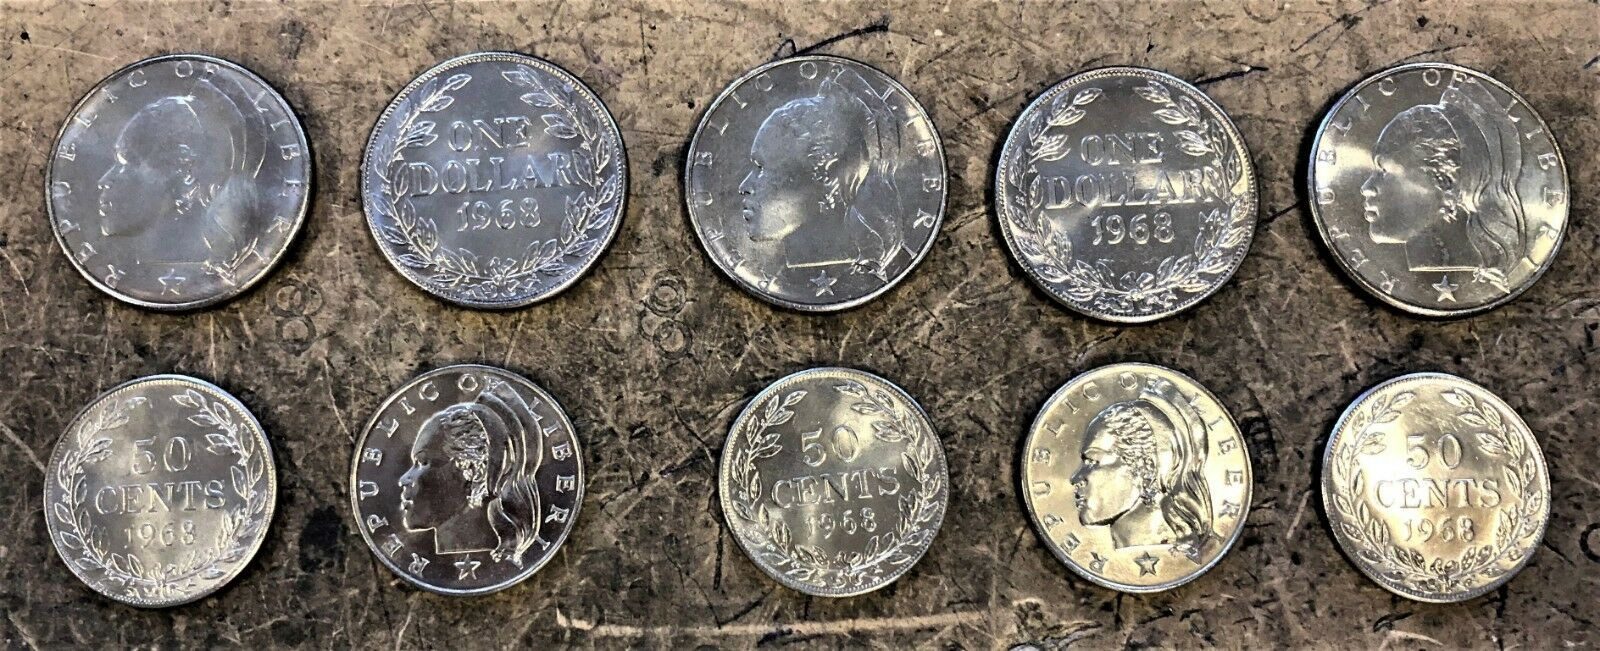 WHOLESALE 10 of EACH LIBERIA 50 CENTS & $1 COINS with FEMALE HEAD UNC of 1968